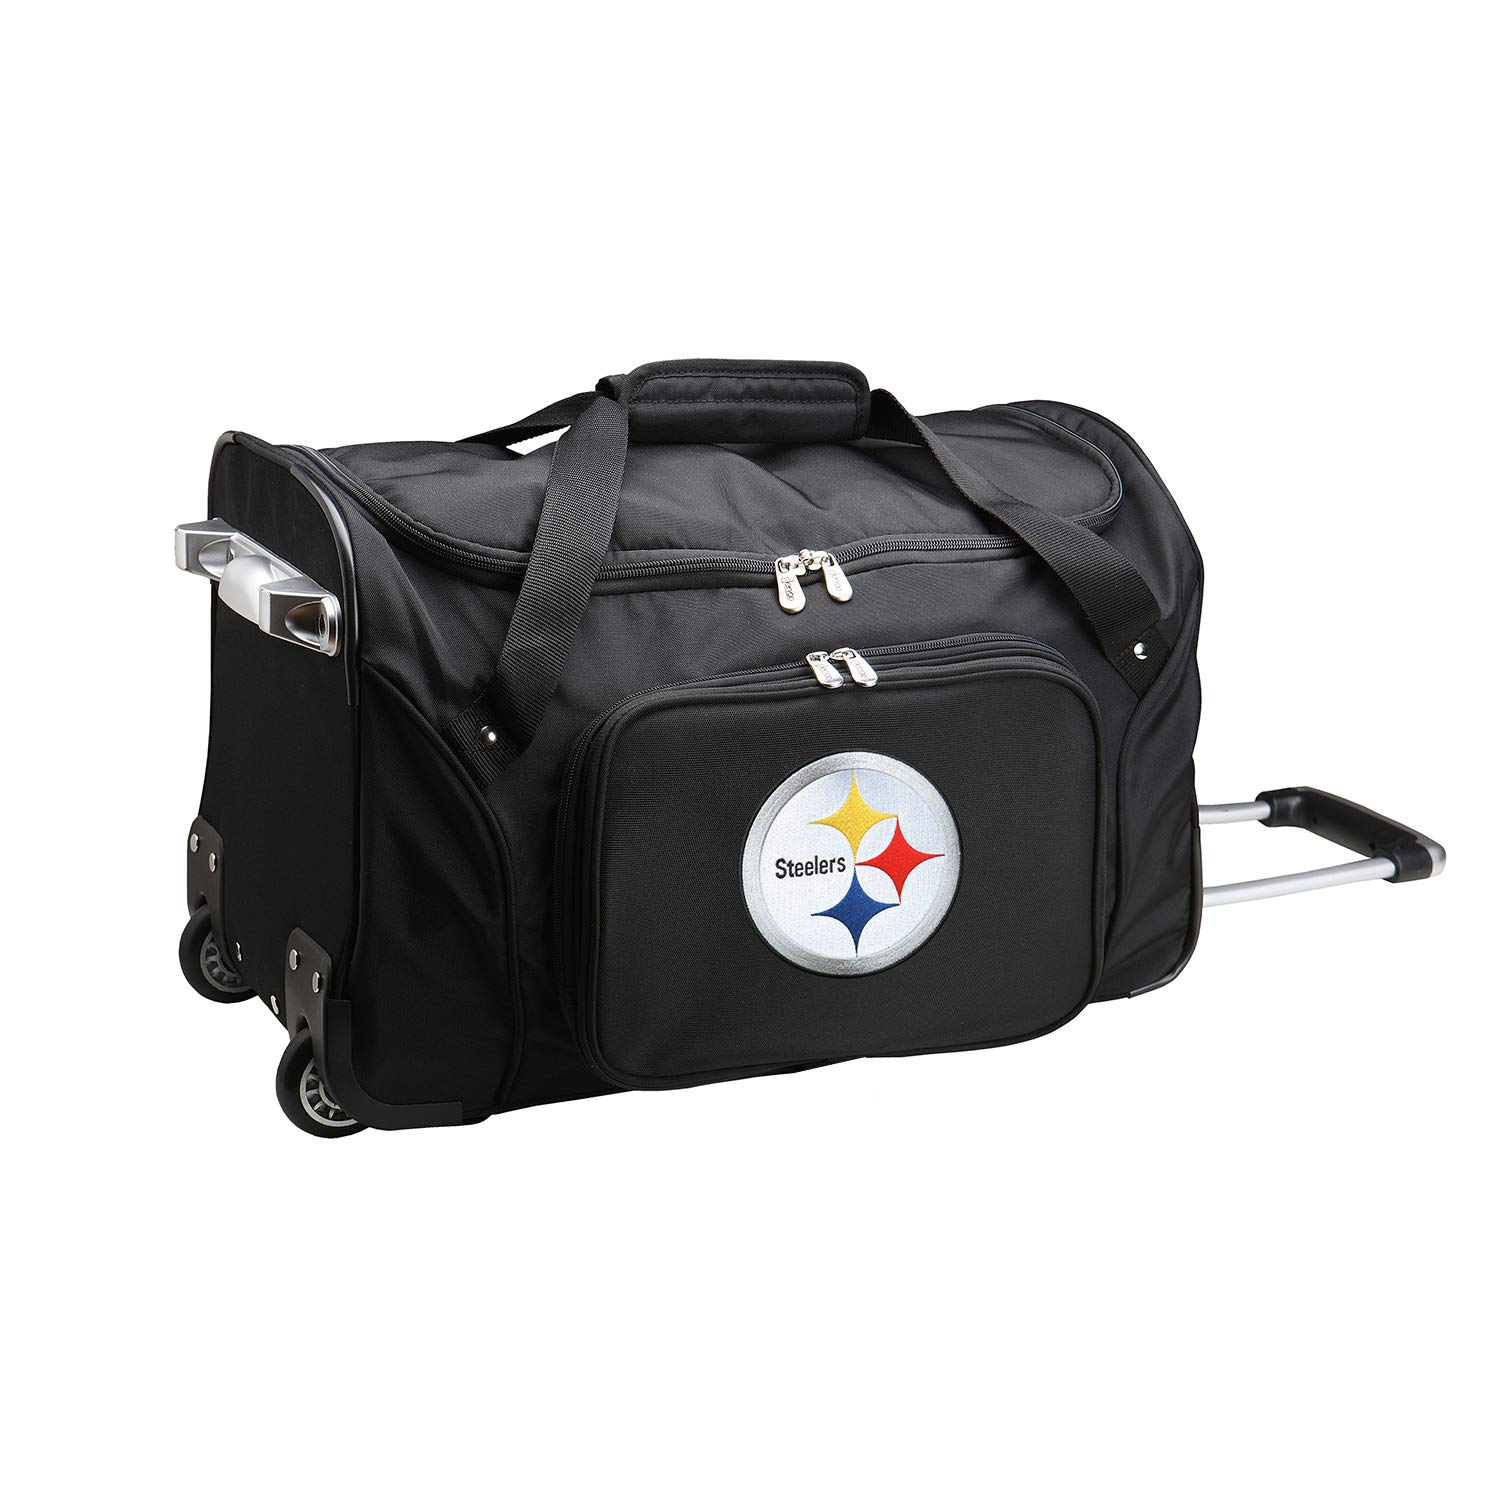 NFL Pittsburgh Steelers Wheeled Duffle Bag, 22 x 12 x 5.5, Black by Denco